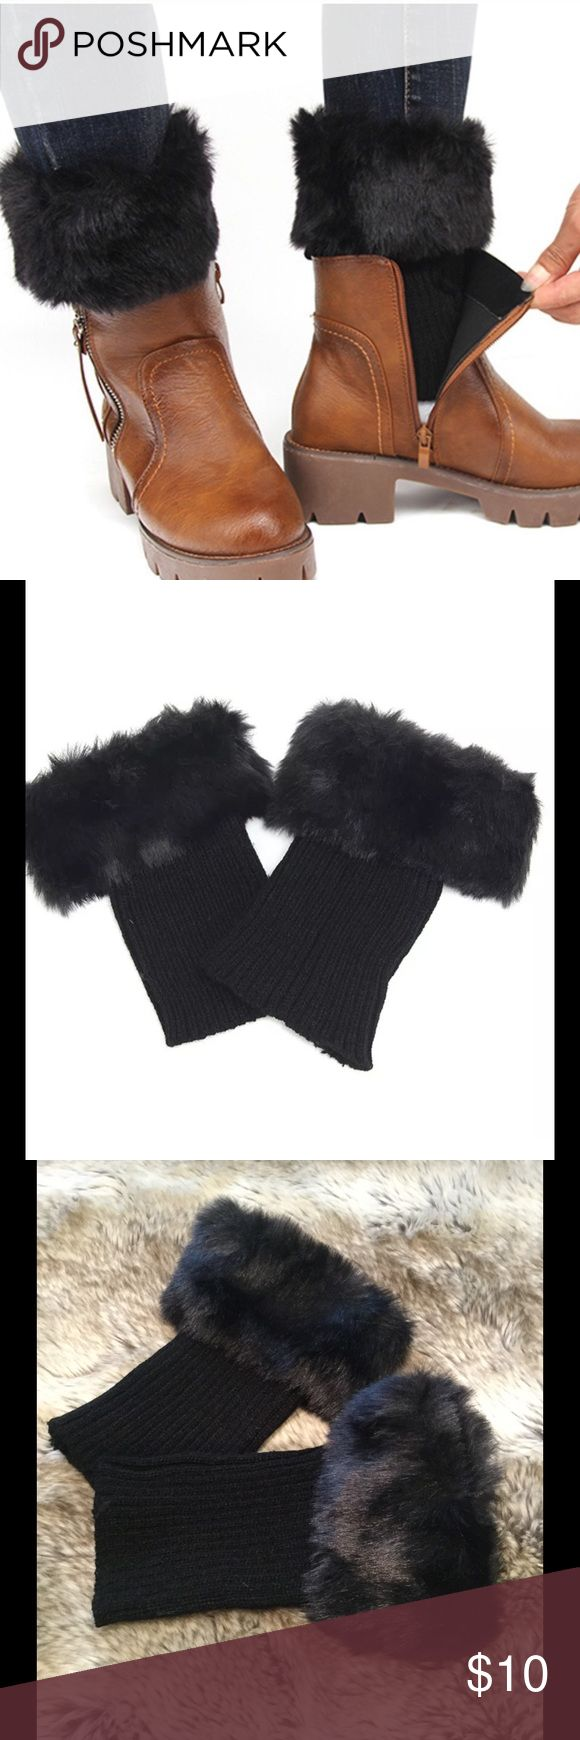 Black Faux Fur Boot Cuffs Faux fur boot cuffs. 7 inches long. 100% acrylic. Price is firm unless bundled. Accessories